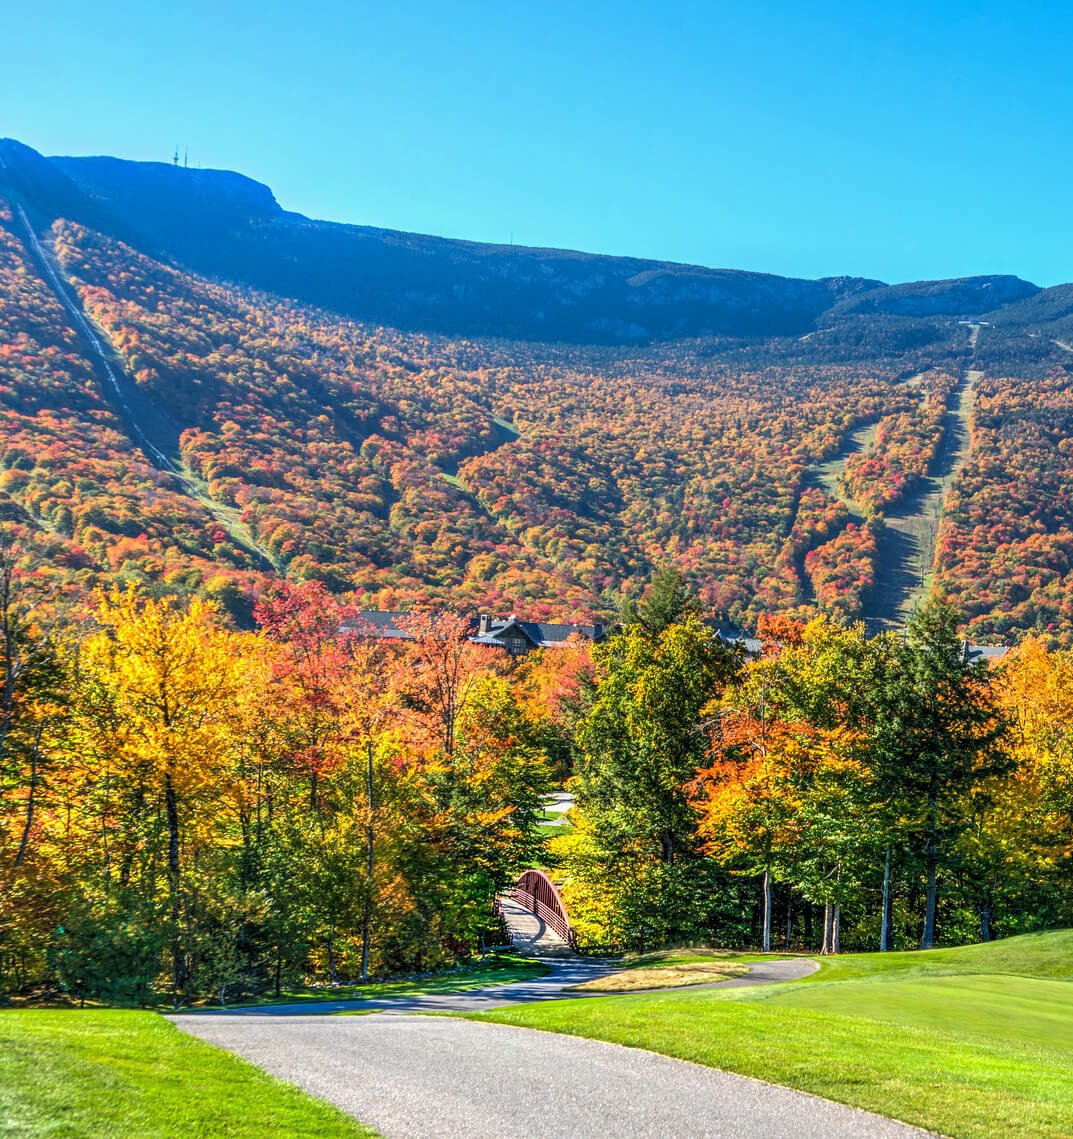 vermont mountains in autumn